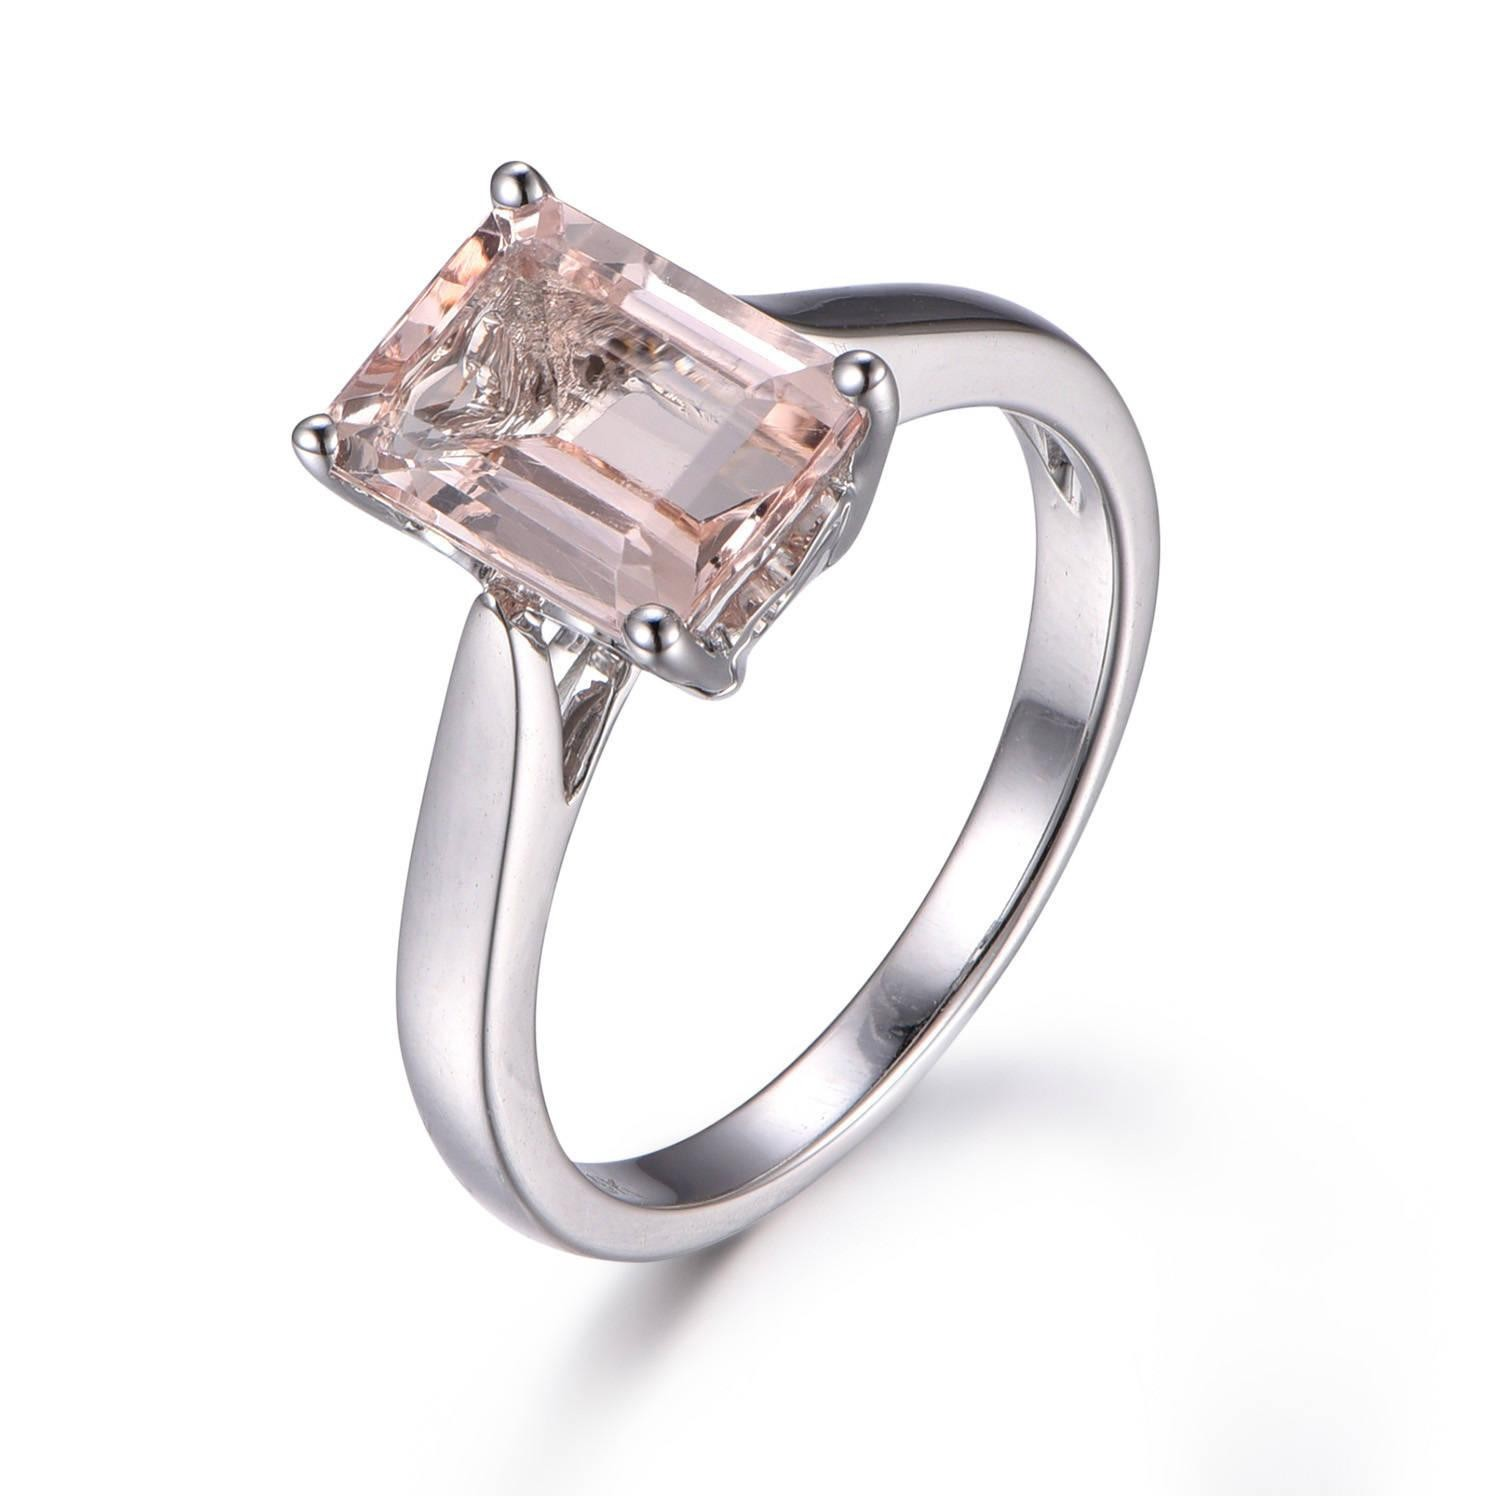 Engagement Rings On Sale Newcastle: Bestselling Morganite Engagement Ring On Sale: 1 Carat